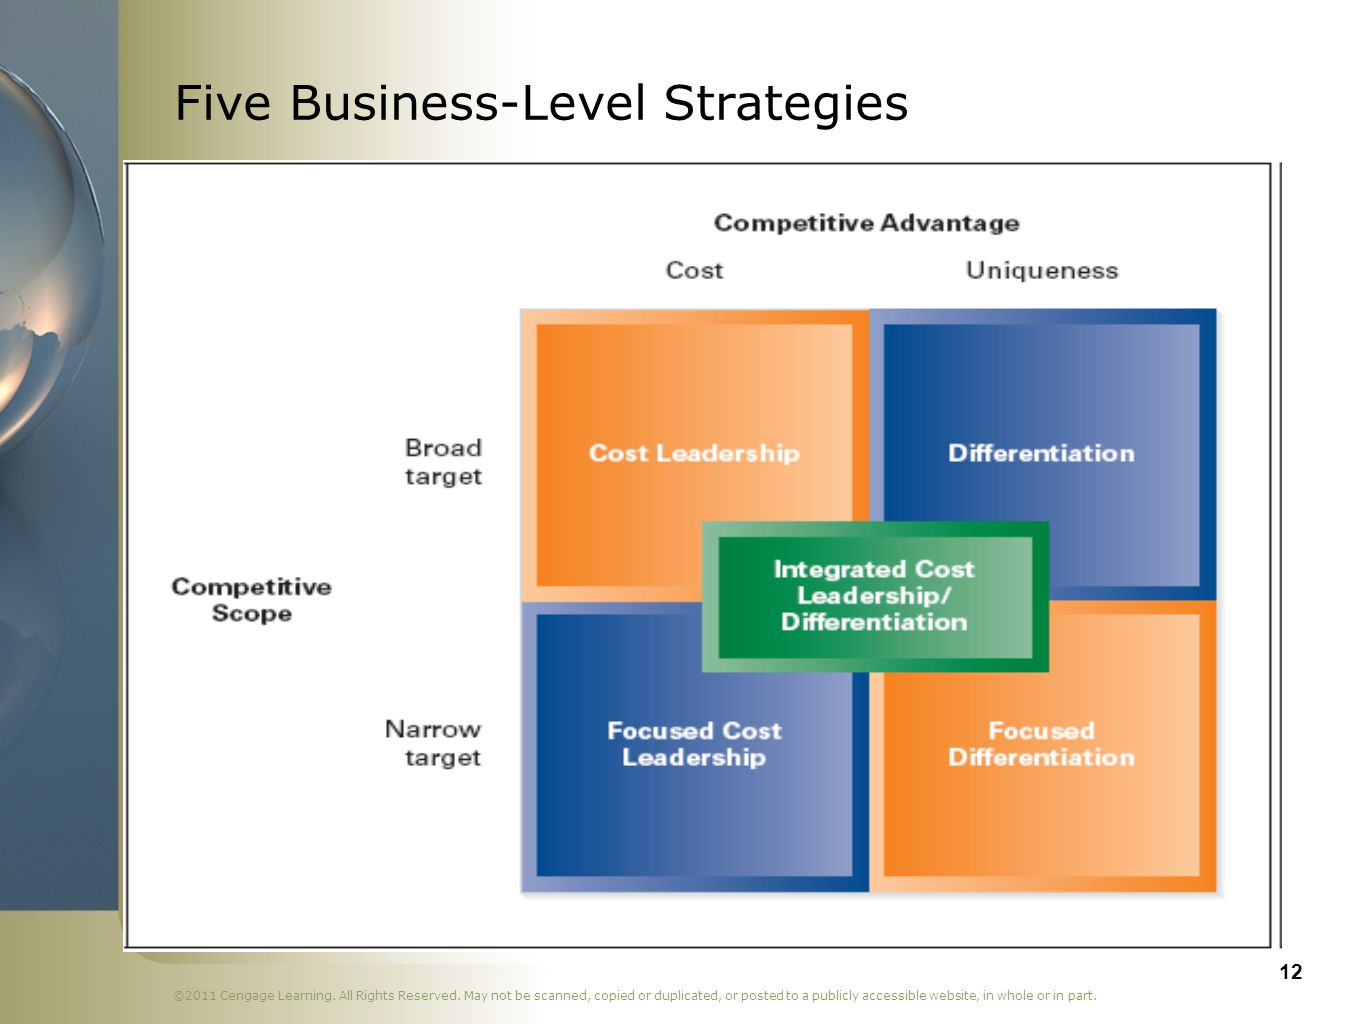 Five Business-Level Strategies